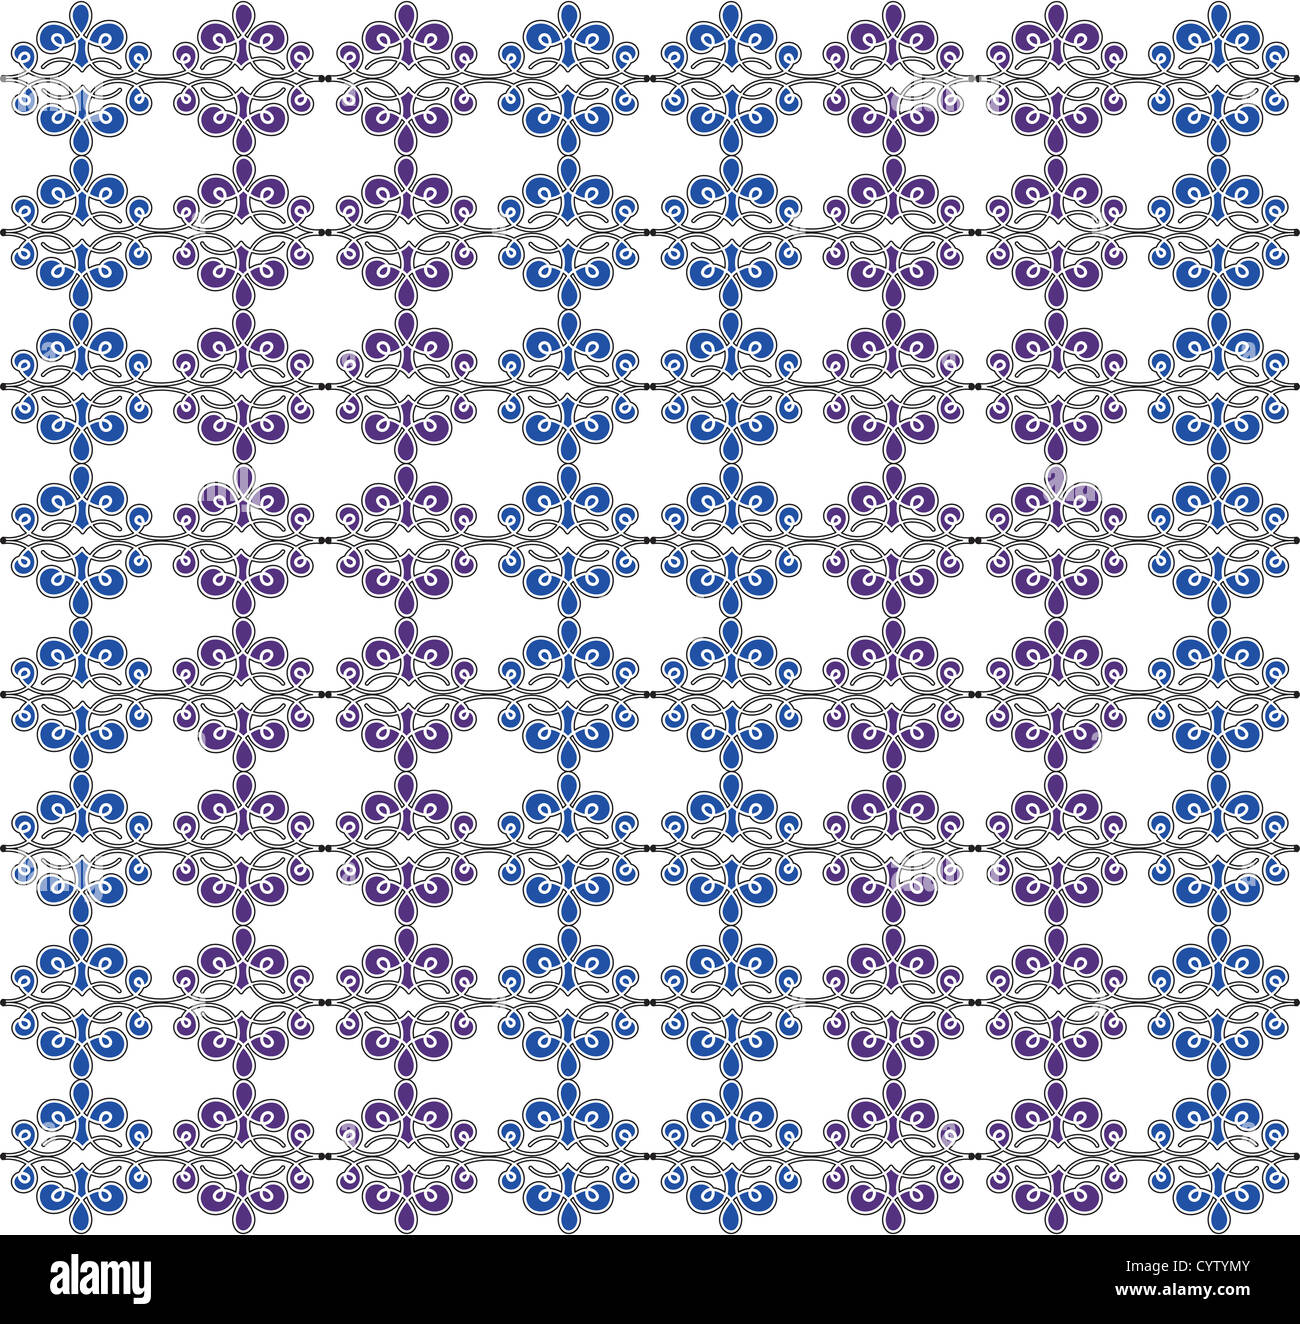 A blue and purple pattern - Stock Image